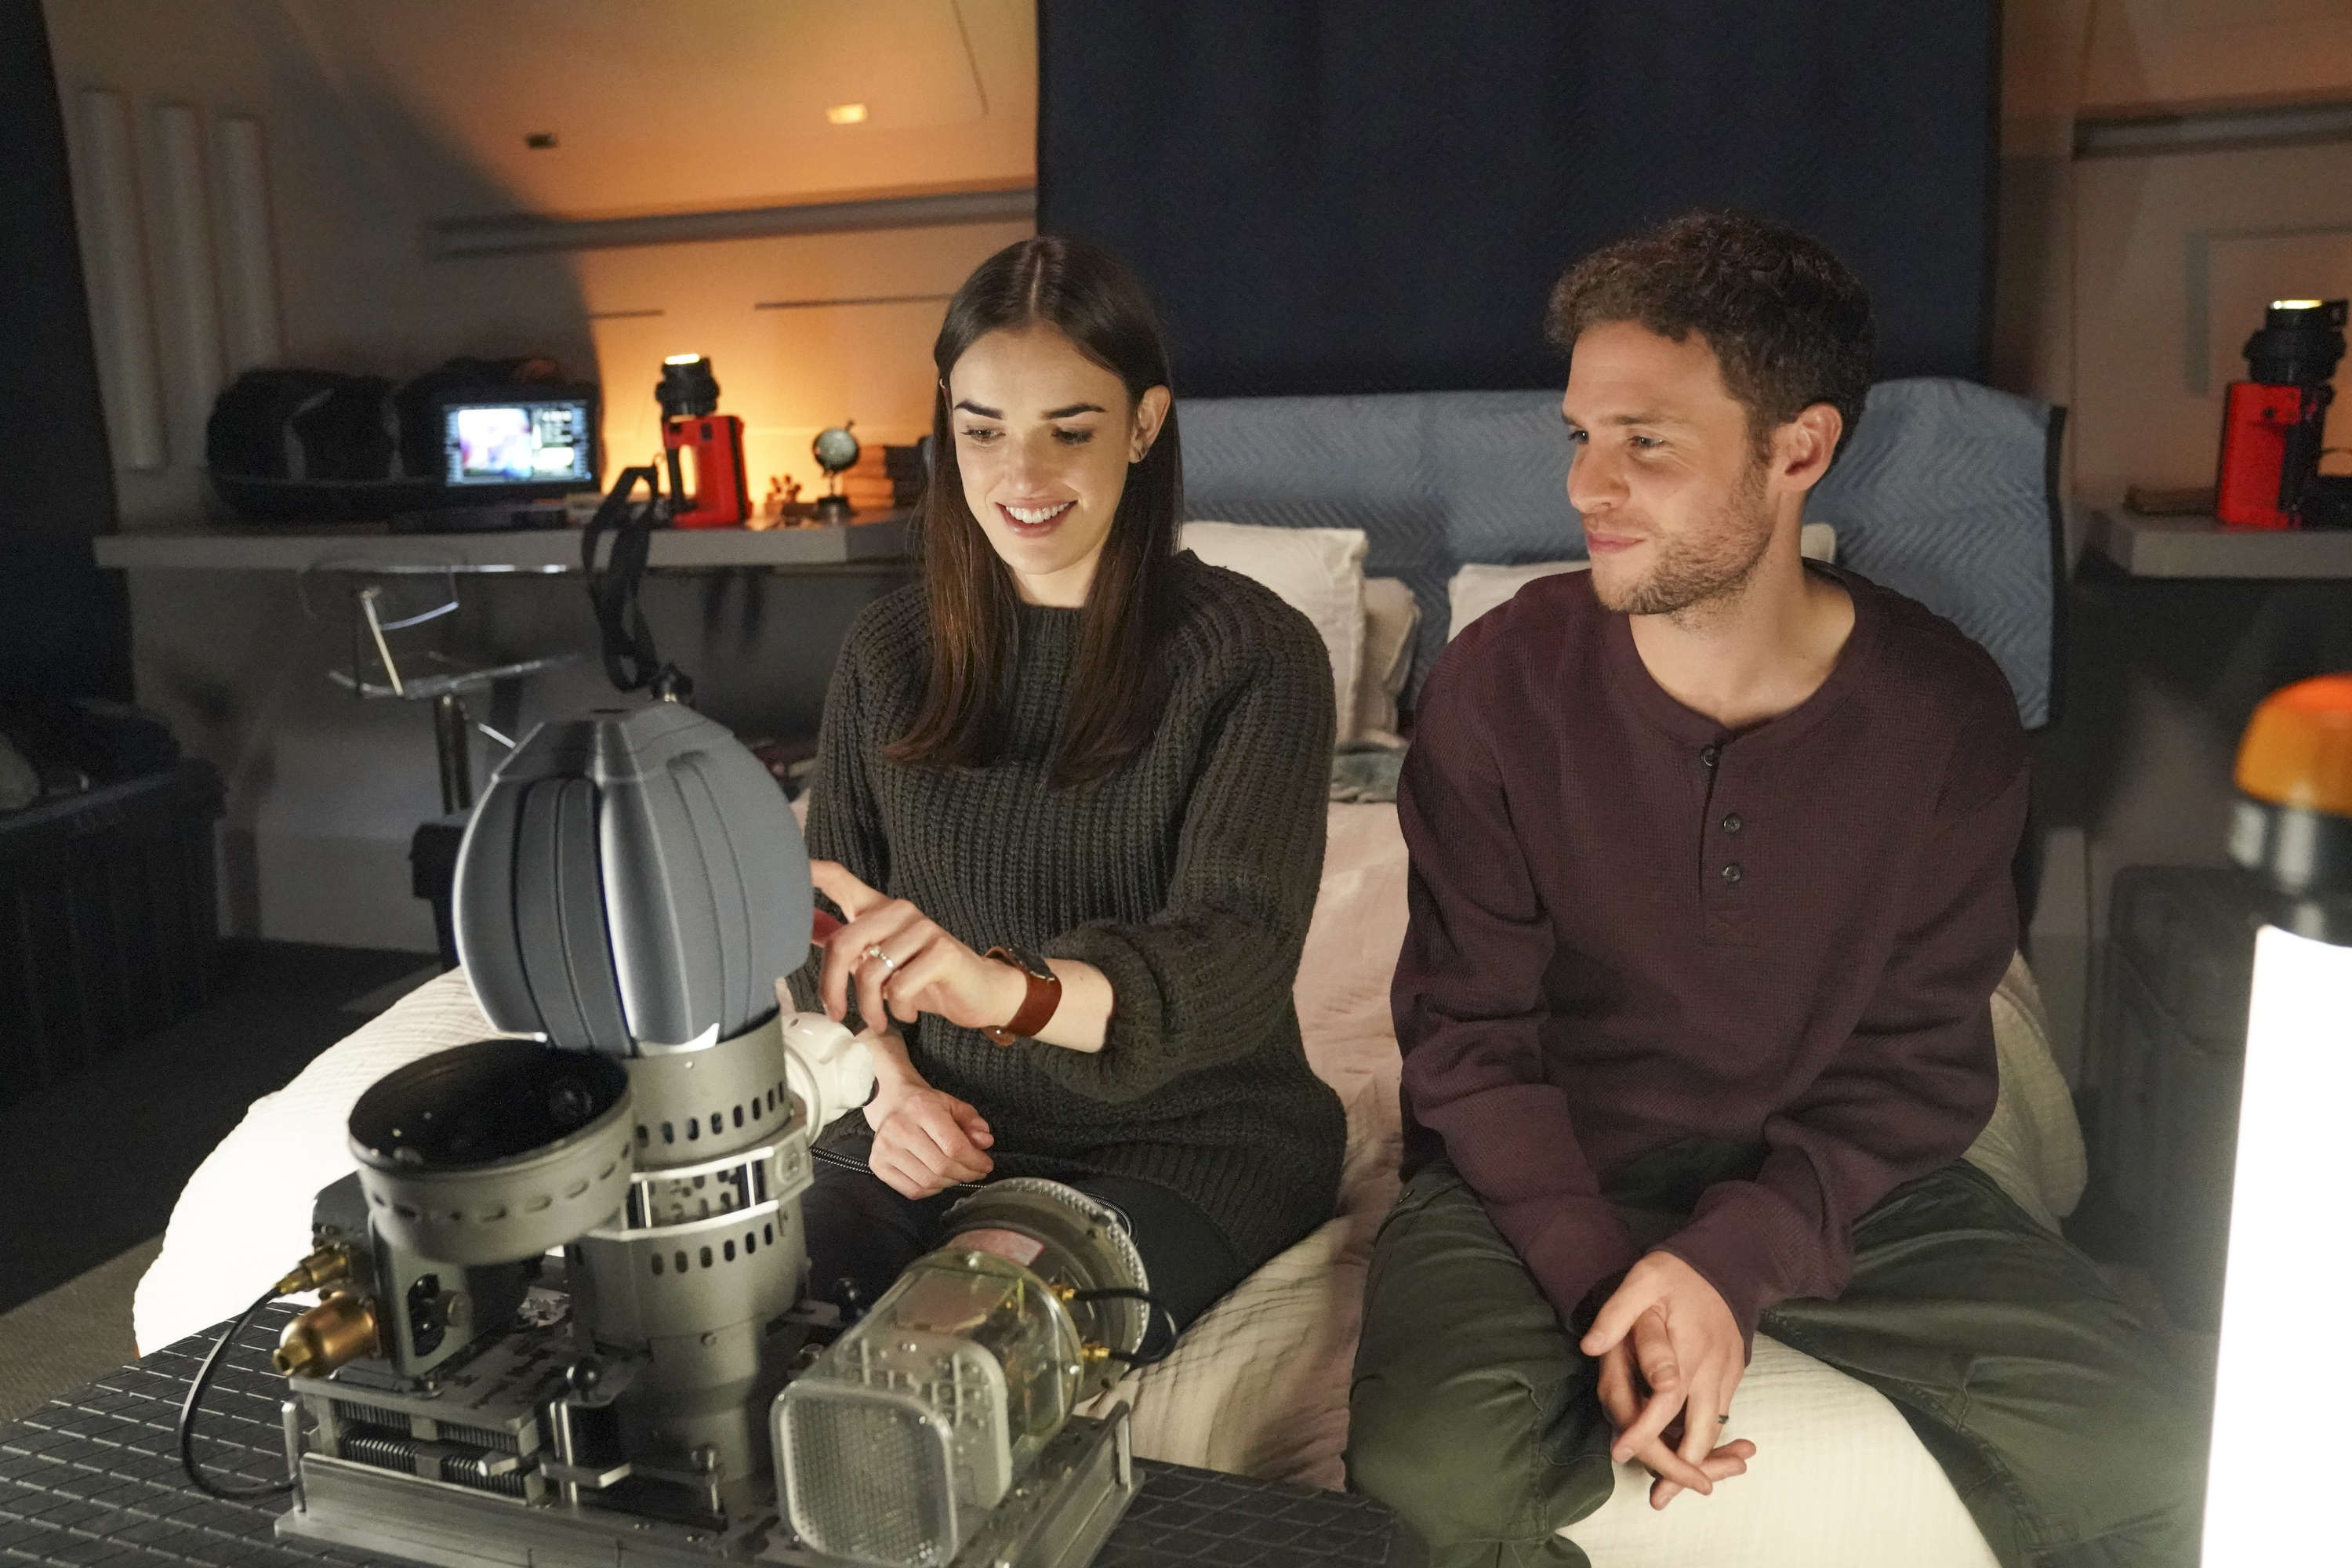 Agents of S.H.I.E.L.D. creative team finally explains Fitz's absence for most of the final season